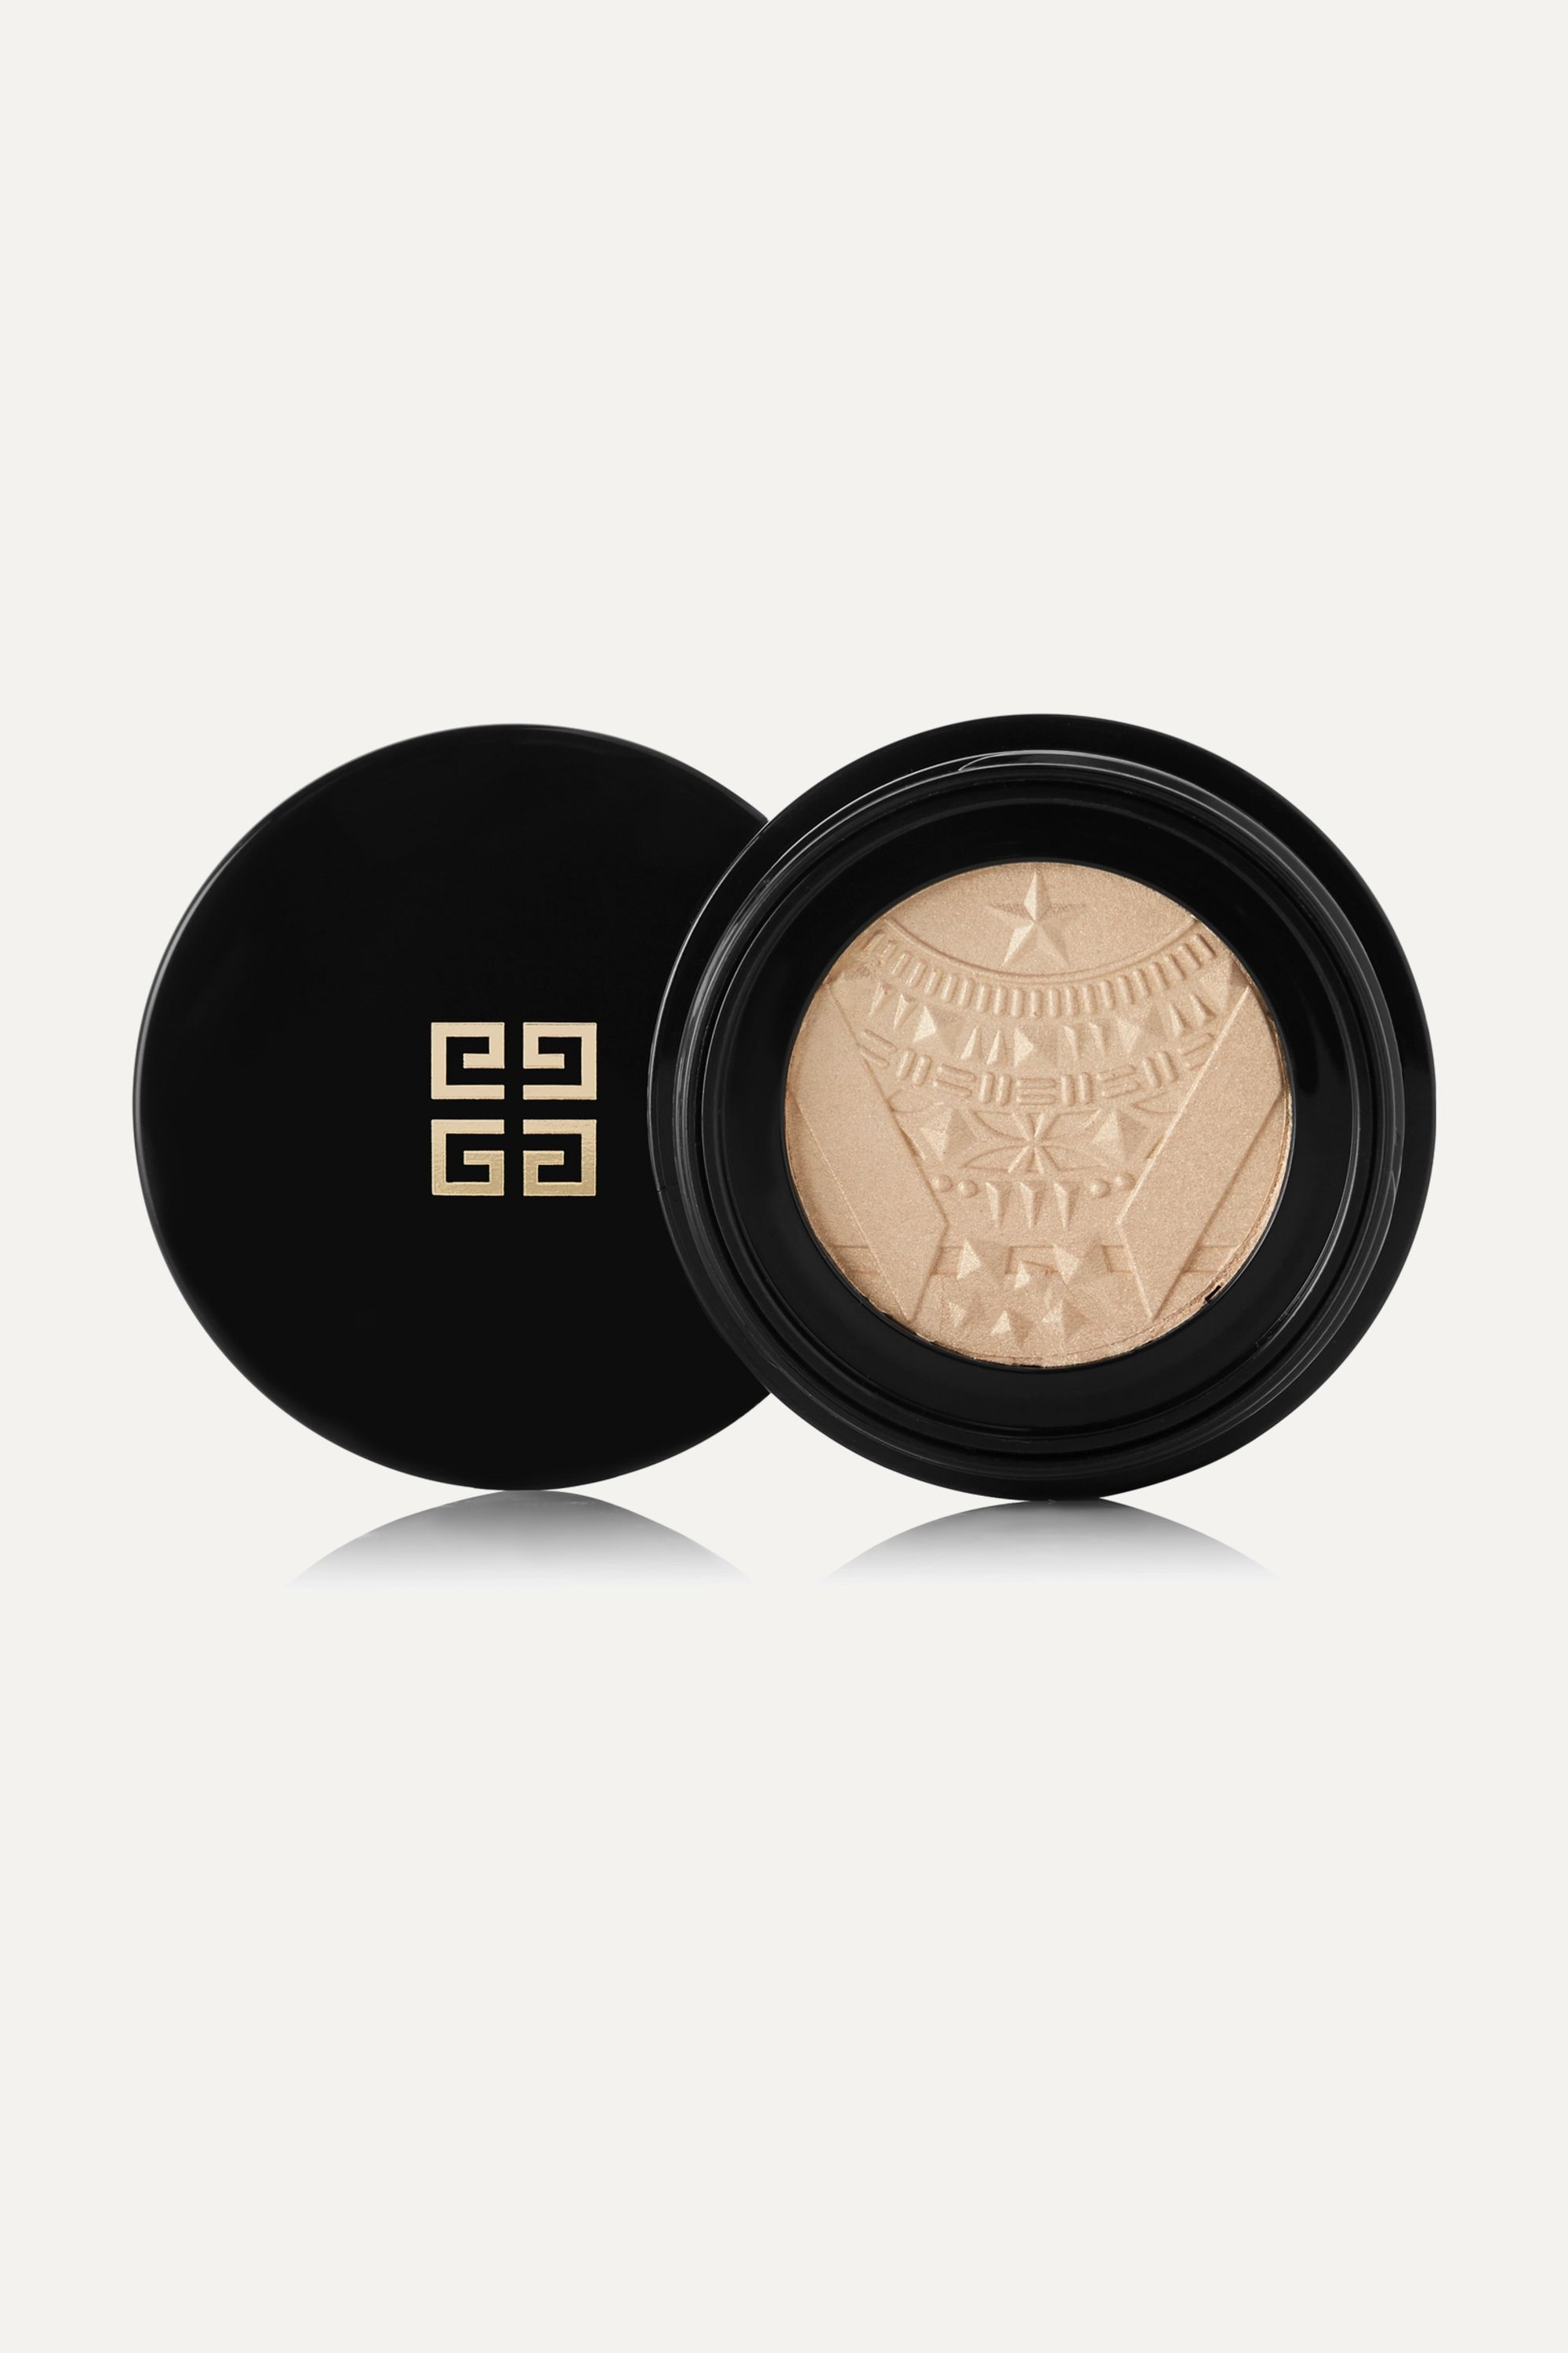 Givenchy Beauty Bouncy Highlighter Cooling Jelly Glow - African Light Gold No.1